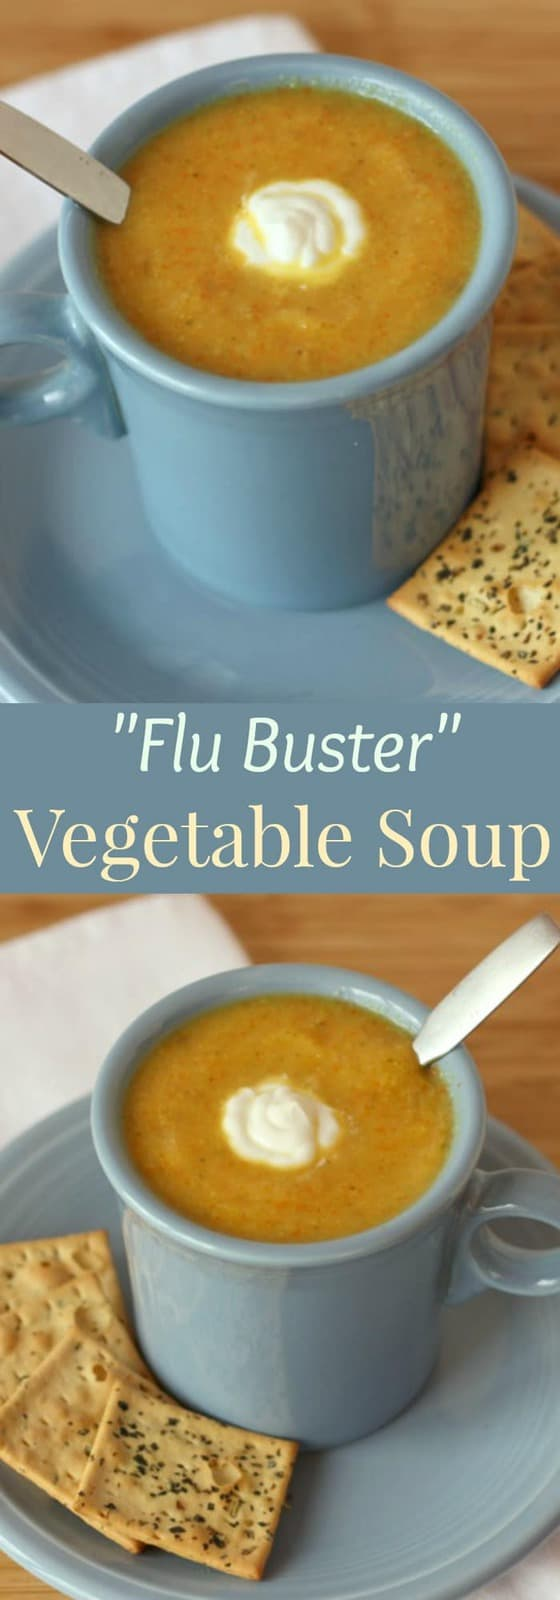 """Flu Buster"" Vegetable Soup - a delicious, creamy vegetable soup recipe without any cream, packed with lots of antiviral goodness. Gluten free and vegan. 